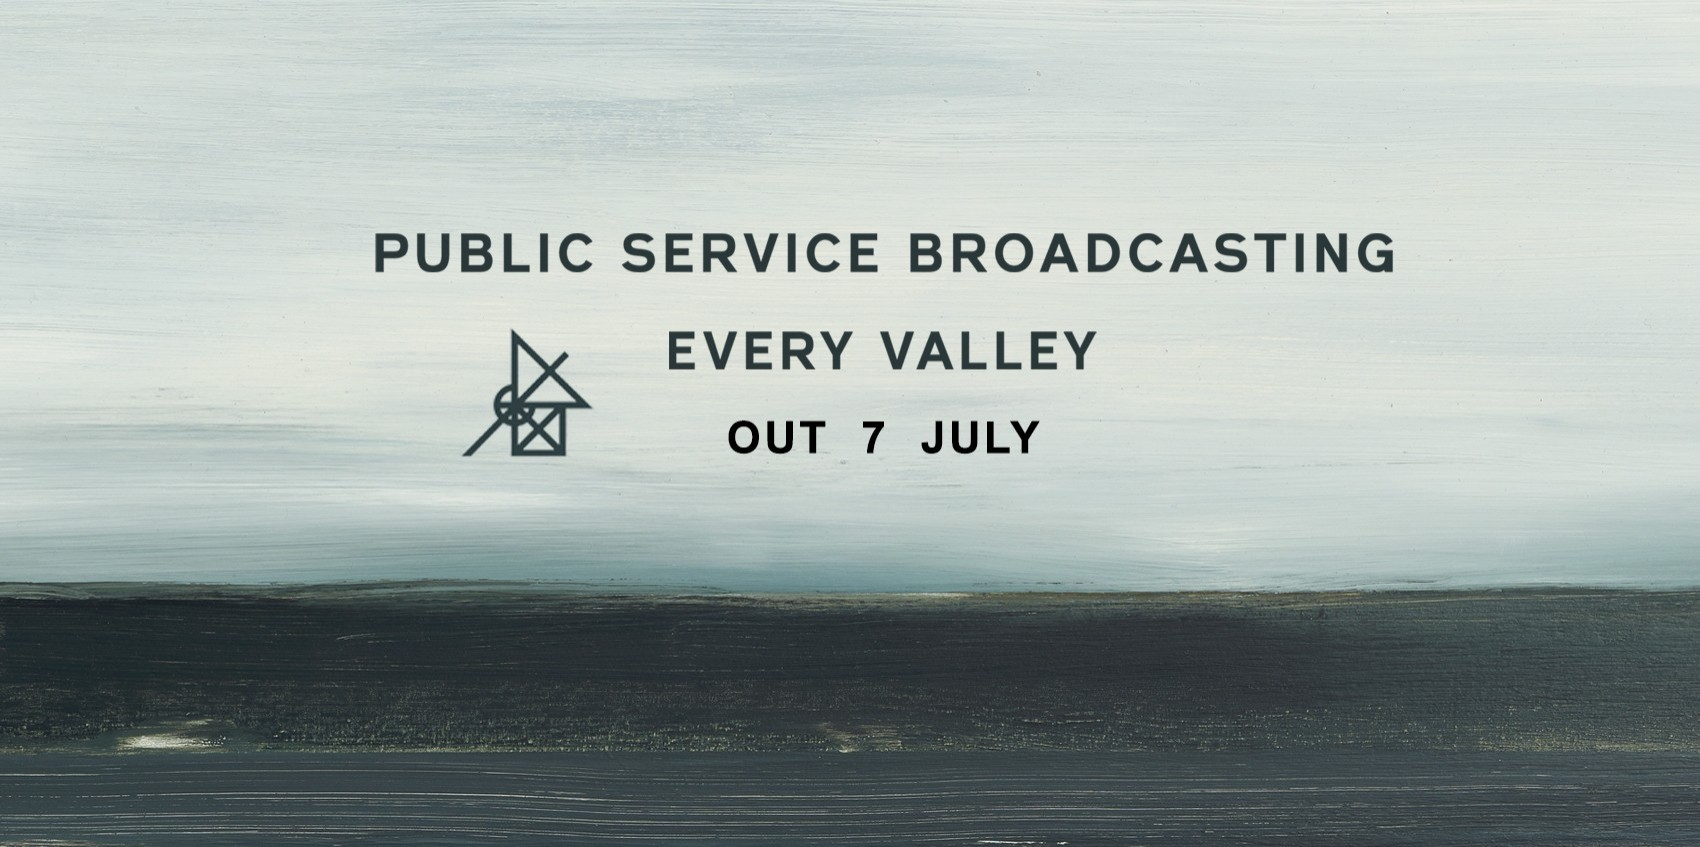 Public Service Broadcasting 'Every Valley' Out 7th July